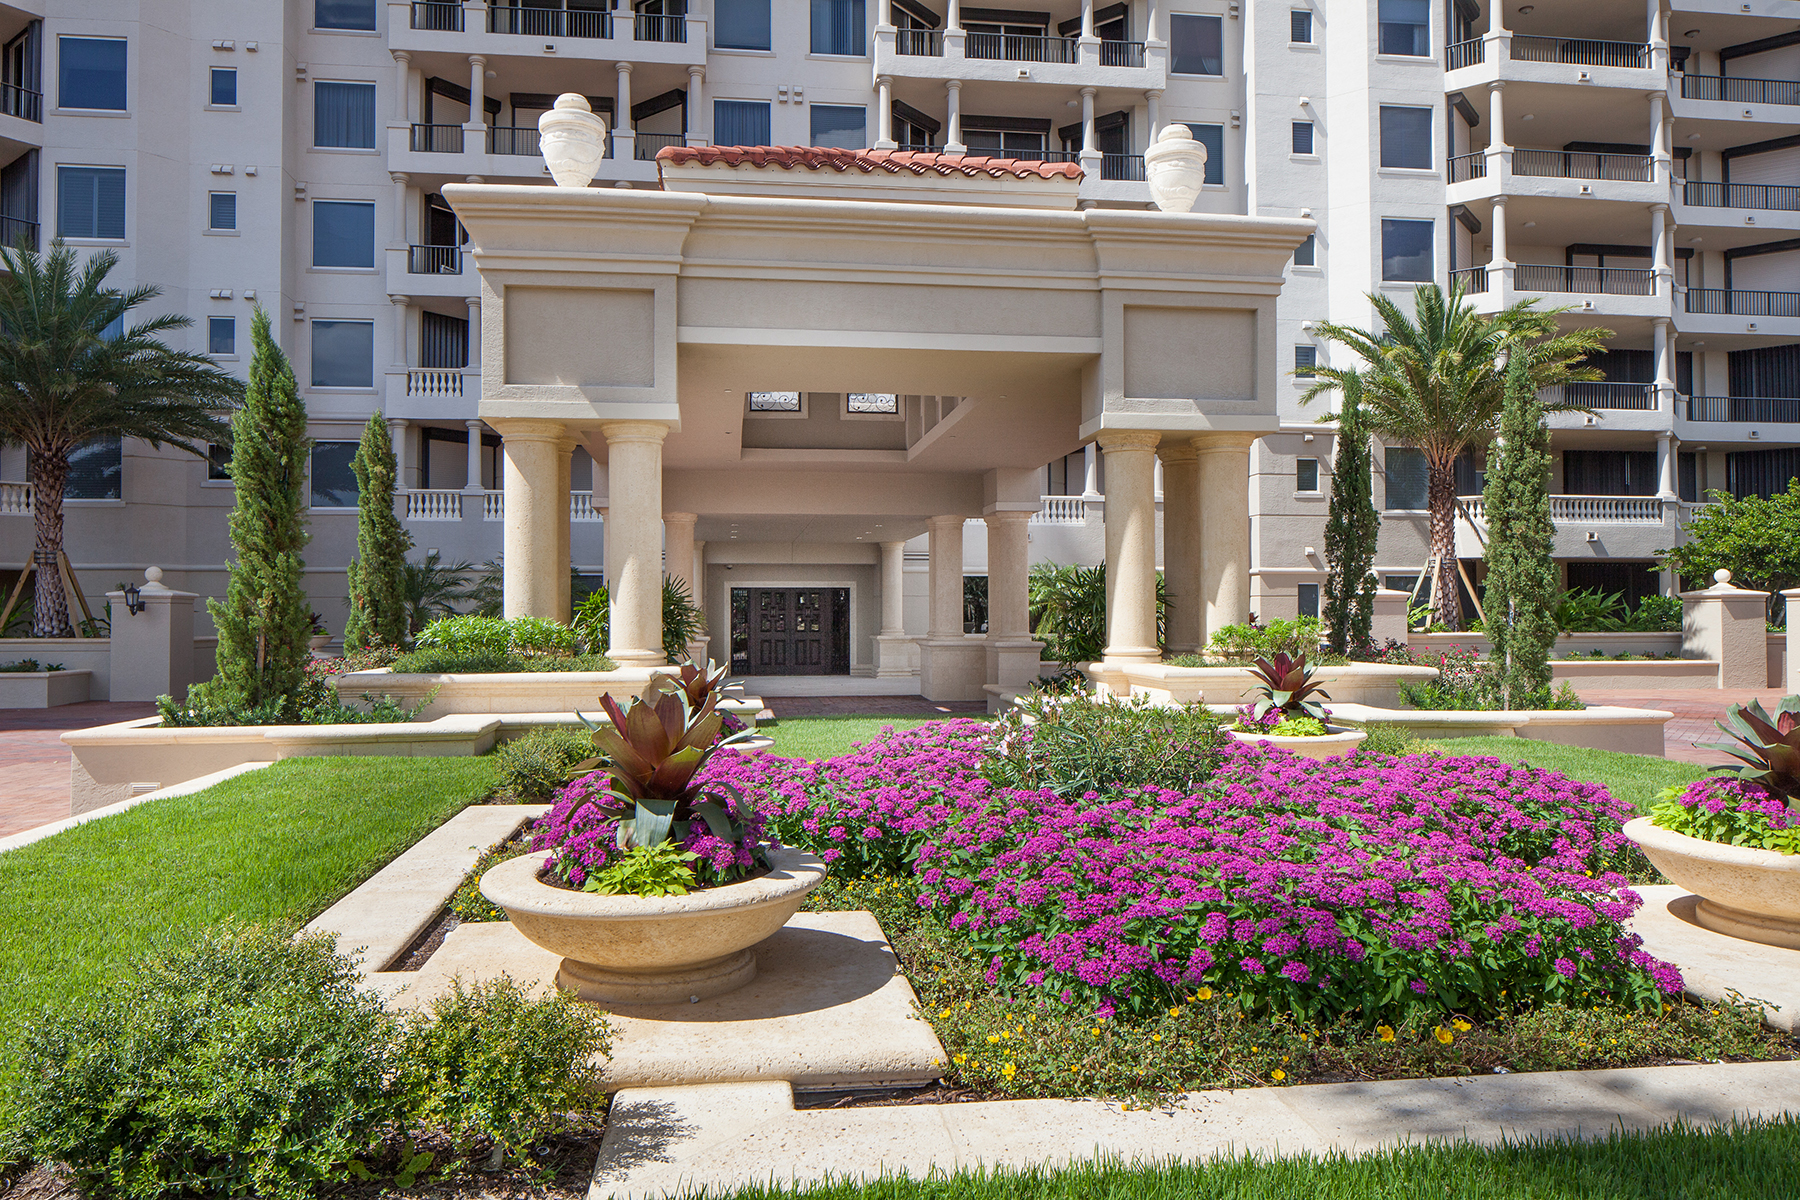 Condominium for Sale at BAY COLONY - TRIESTE 8787 Bay Colony Dr 1106 Naples, Florida, 34108 United States